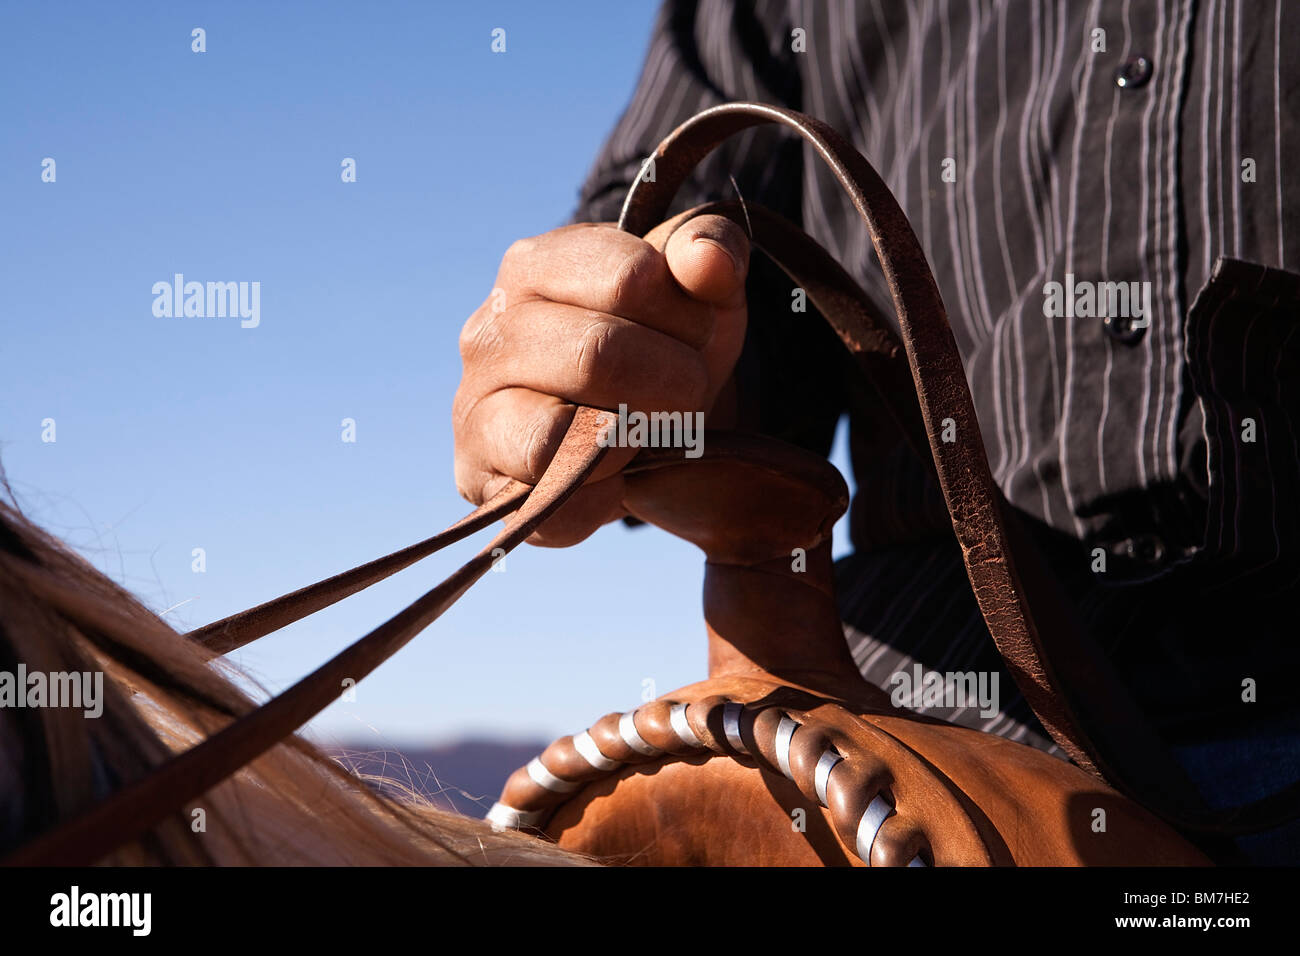 Man holding the reins of horse, close-up, focus on hand Stock Photo